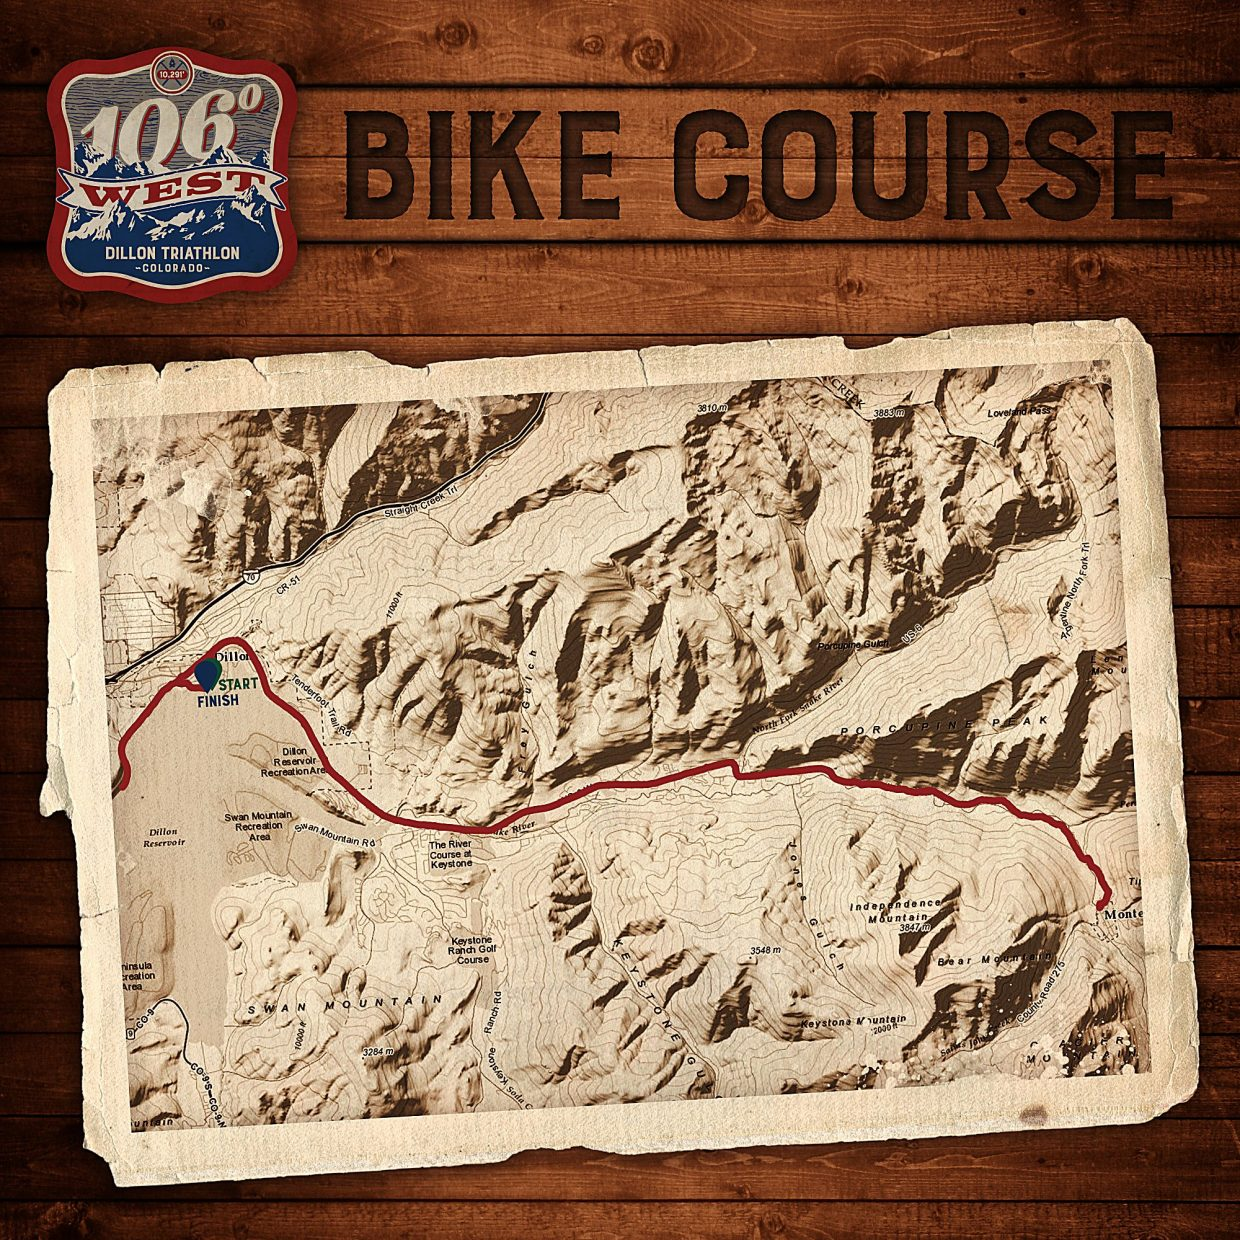 The 56-mile bike route for the debut 106 West Traithlon in Dillon on Sept. 10. The route takes cyclists on two laps from Dillon Marina to Montezuma and back. Spectators can catch the action anywhere along U.S. Highway 6, but be aware that all eastbound lanes are closed for racers.